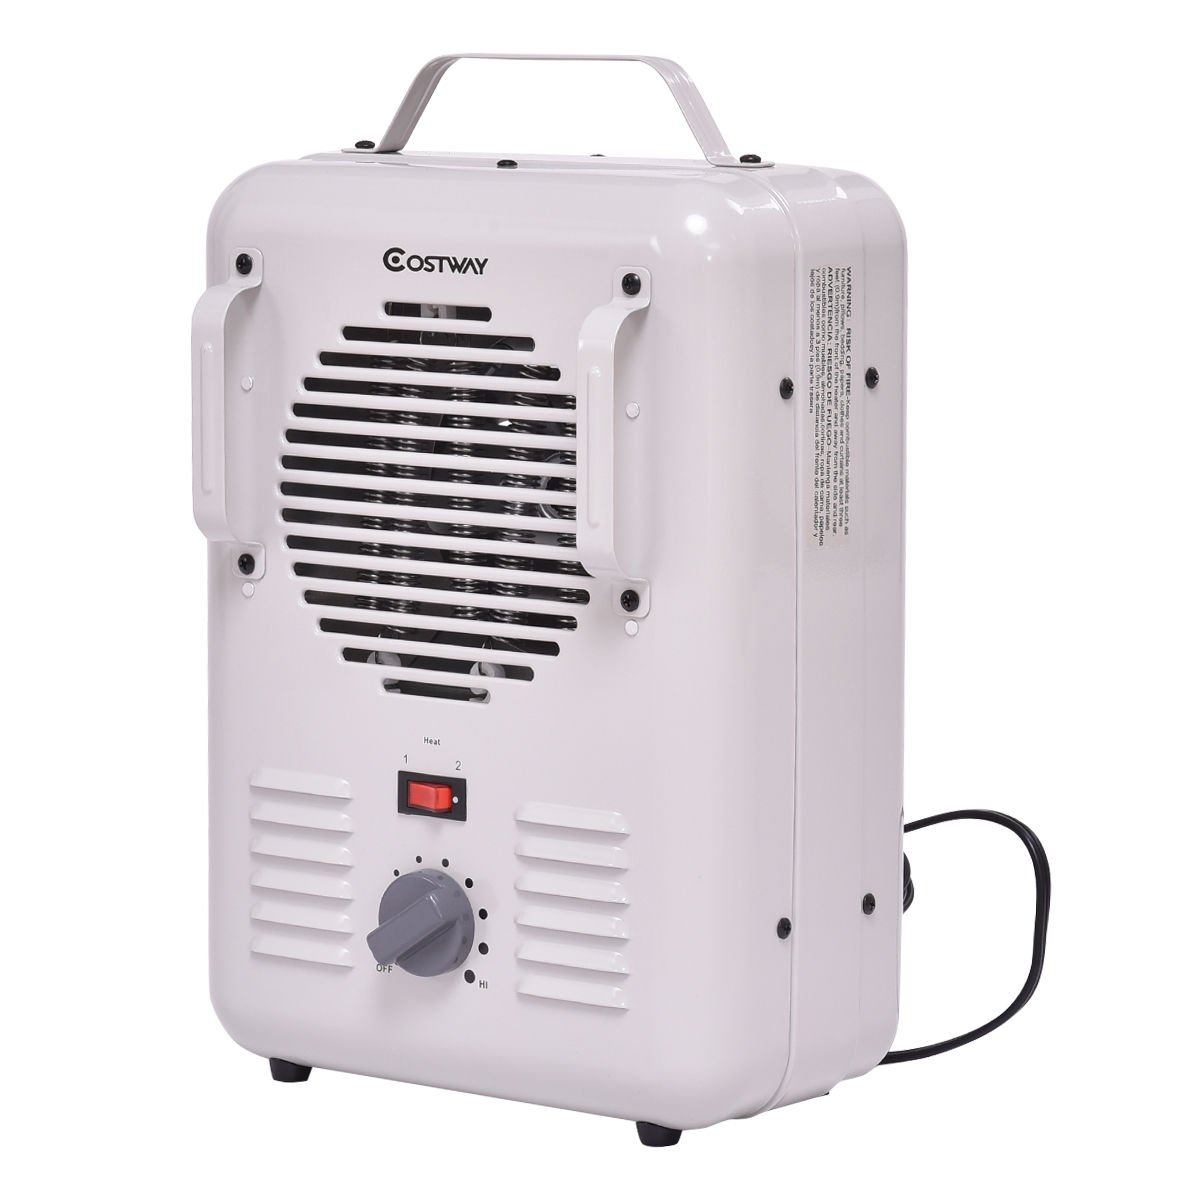 Amazon.com: Thegood88 Electric Portable Utility Space Heater Thermostat Room 1500W Air Heating Wall: Kitchen & Dining